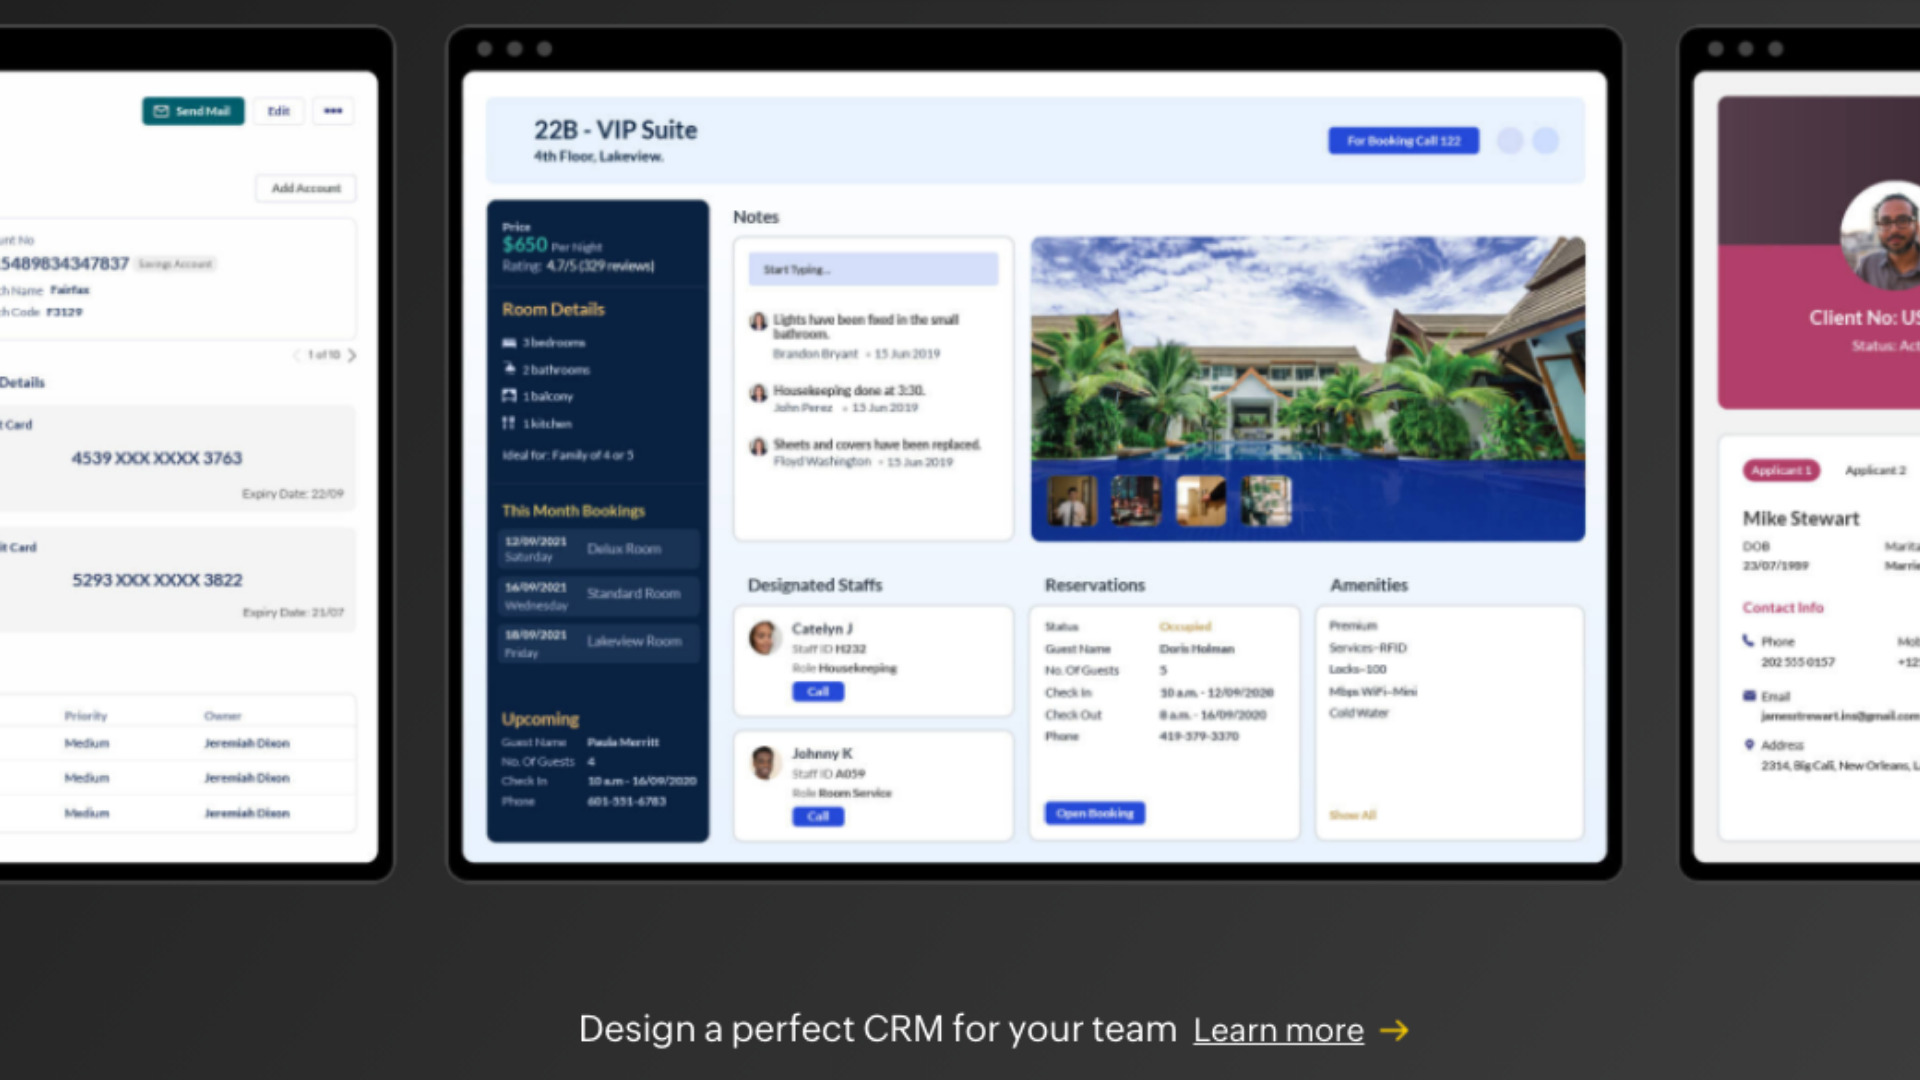 Zoho CRM's Canvas feature